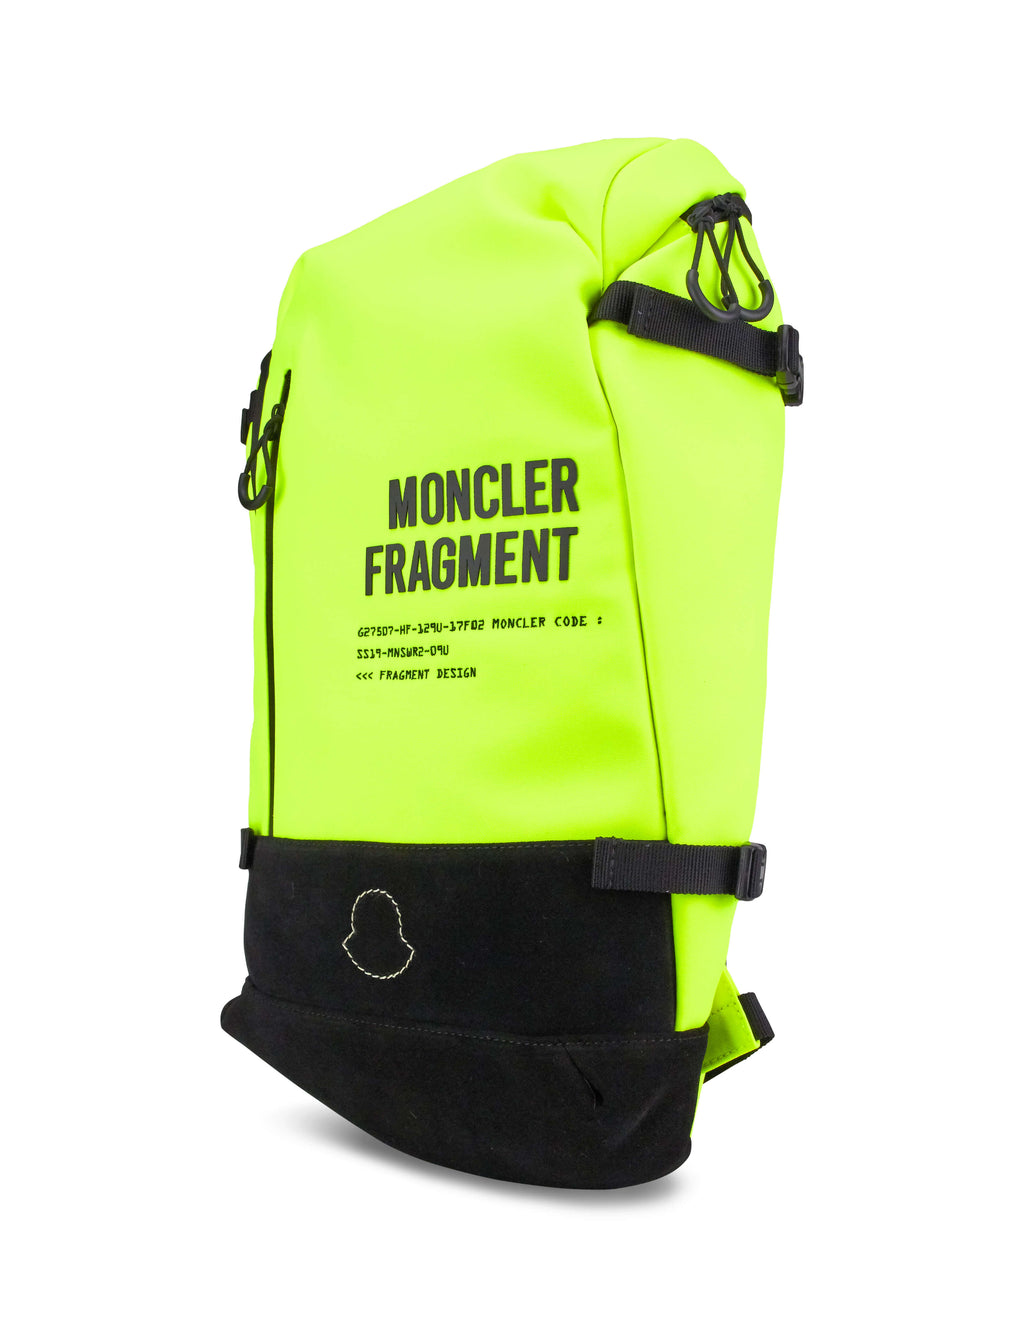 7 Moncler Fragment Hiroshi Fujiwara Men's Giulio Fashion Yellow Embroidered Logo Backpack 0061200549ZM150